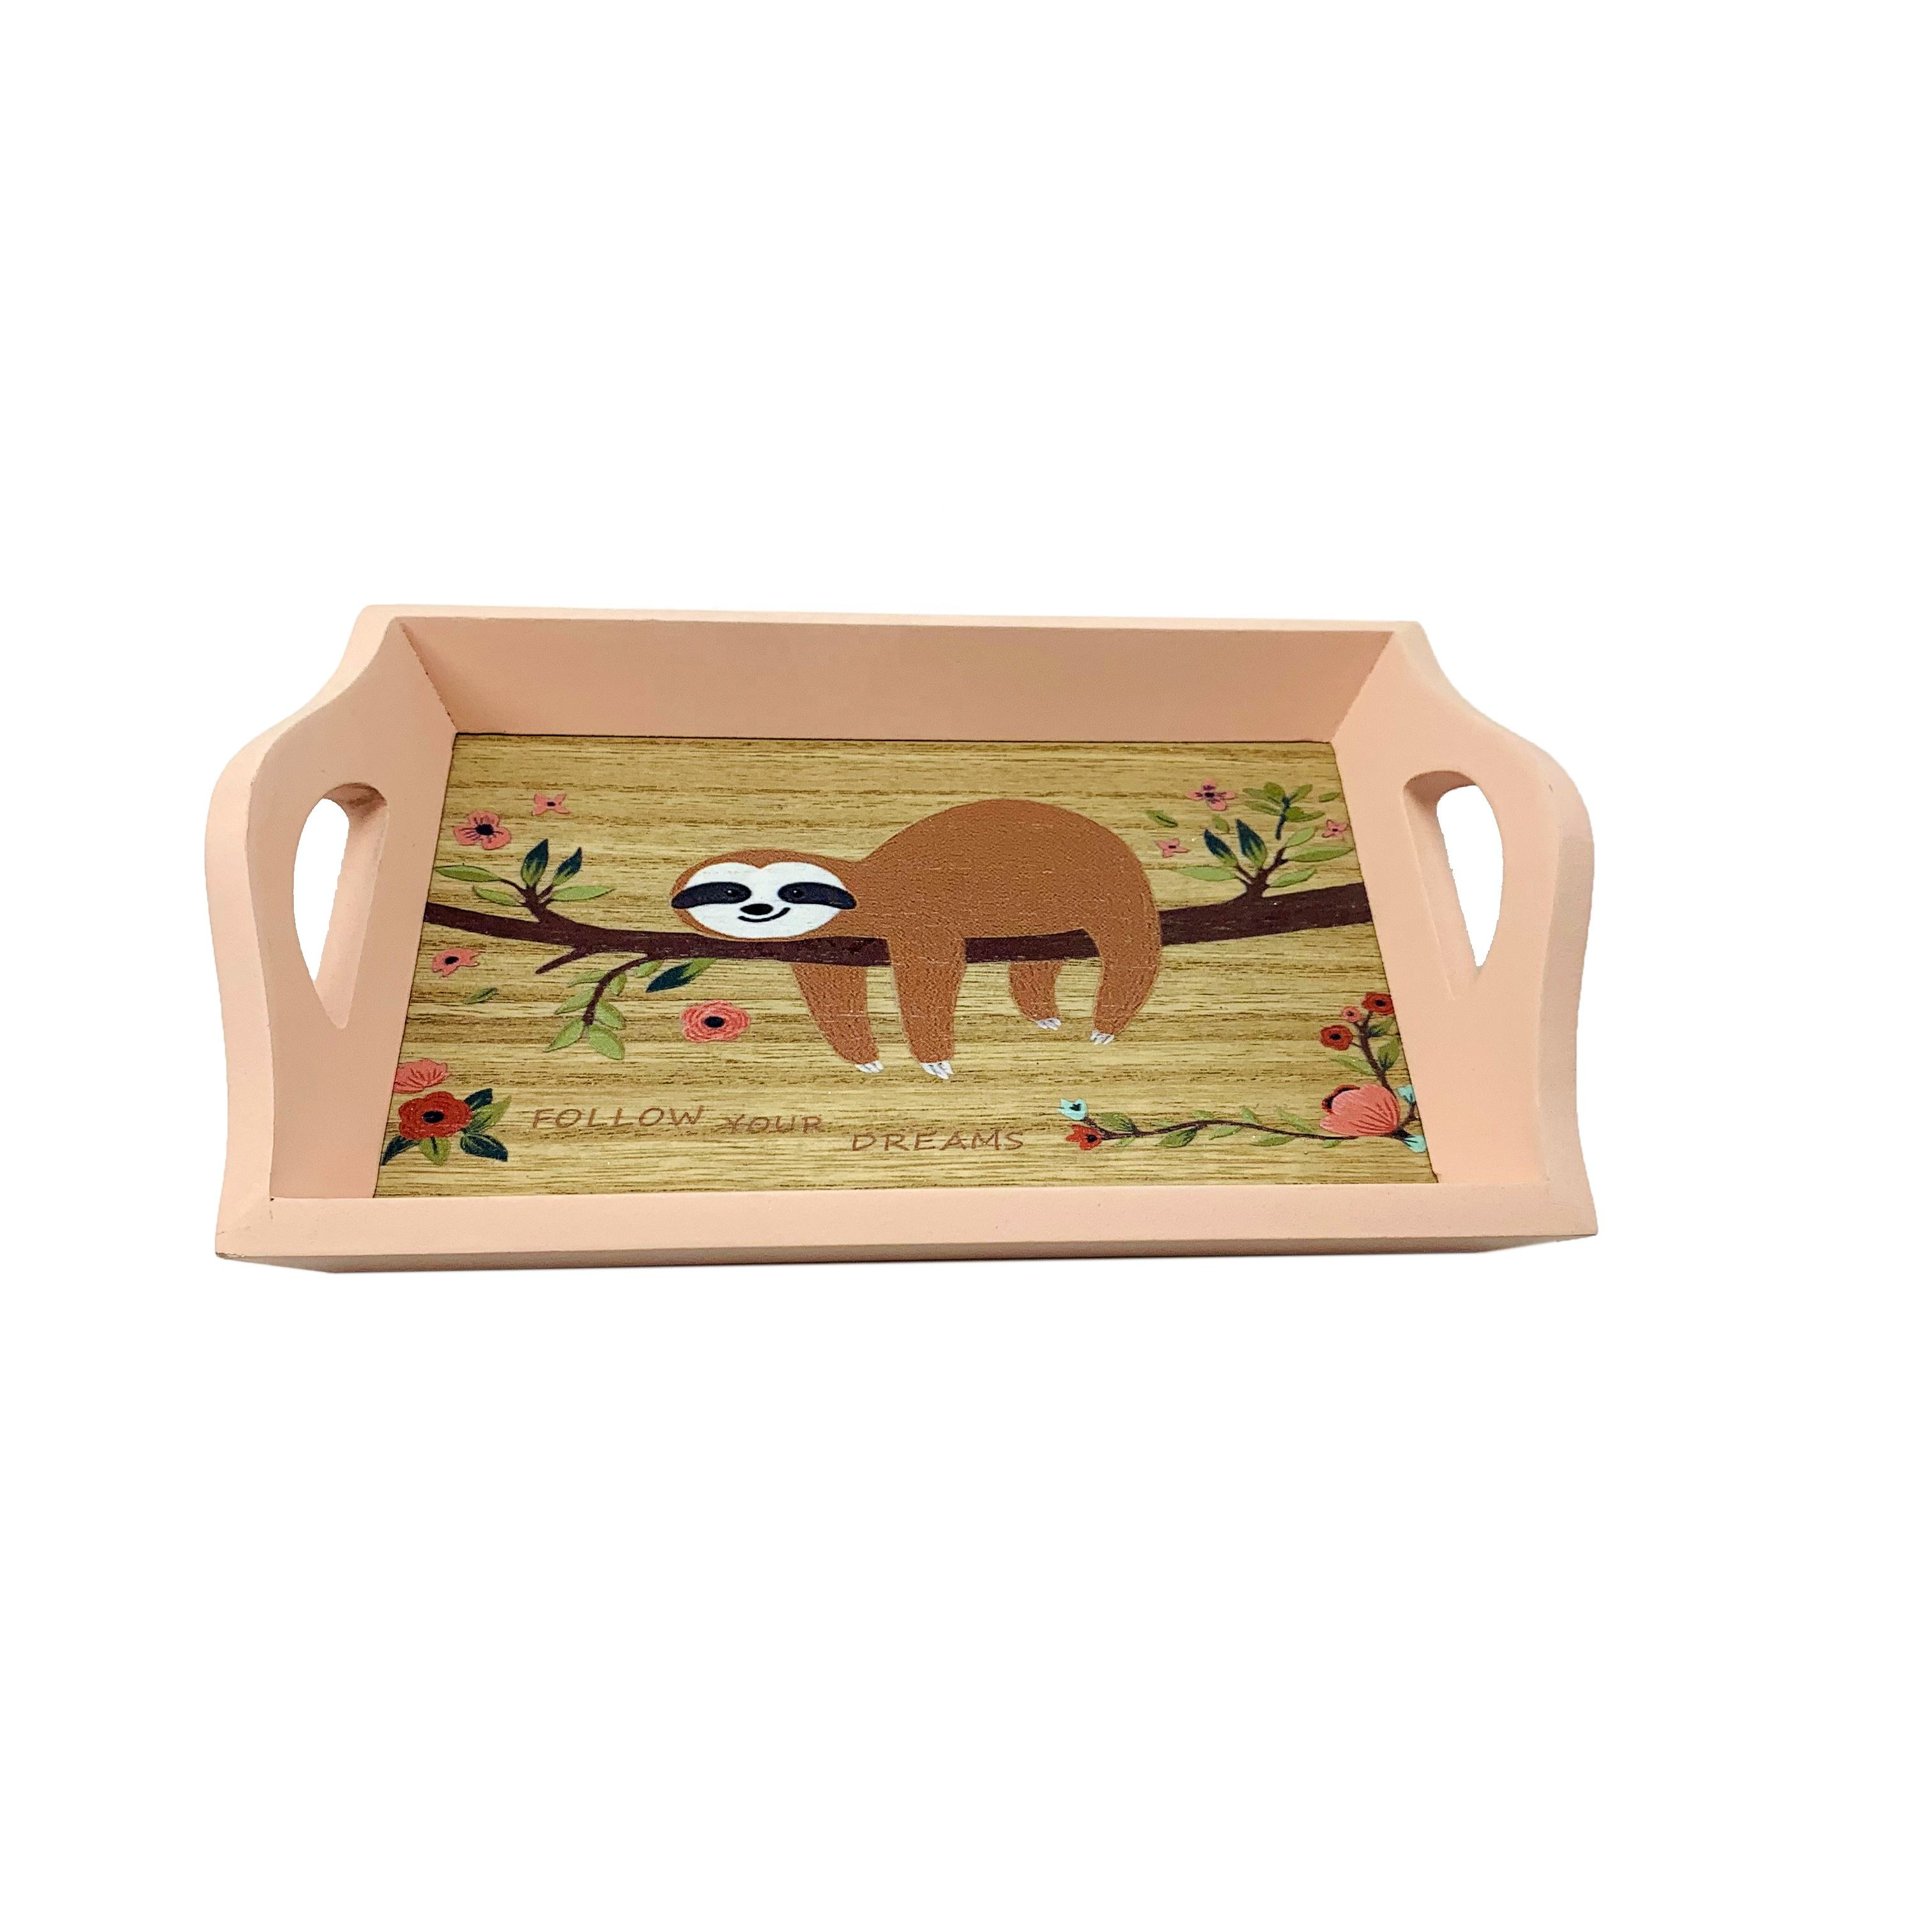 Wholesale decorative table wooden serving tray with handles